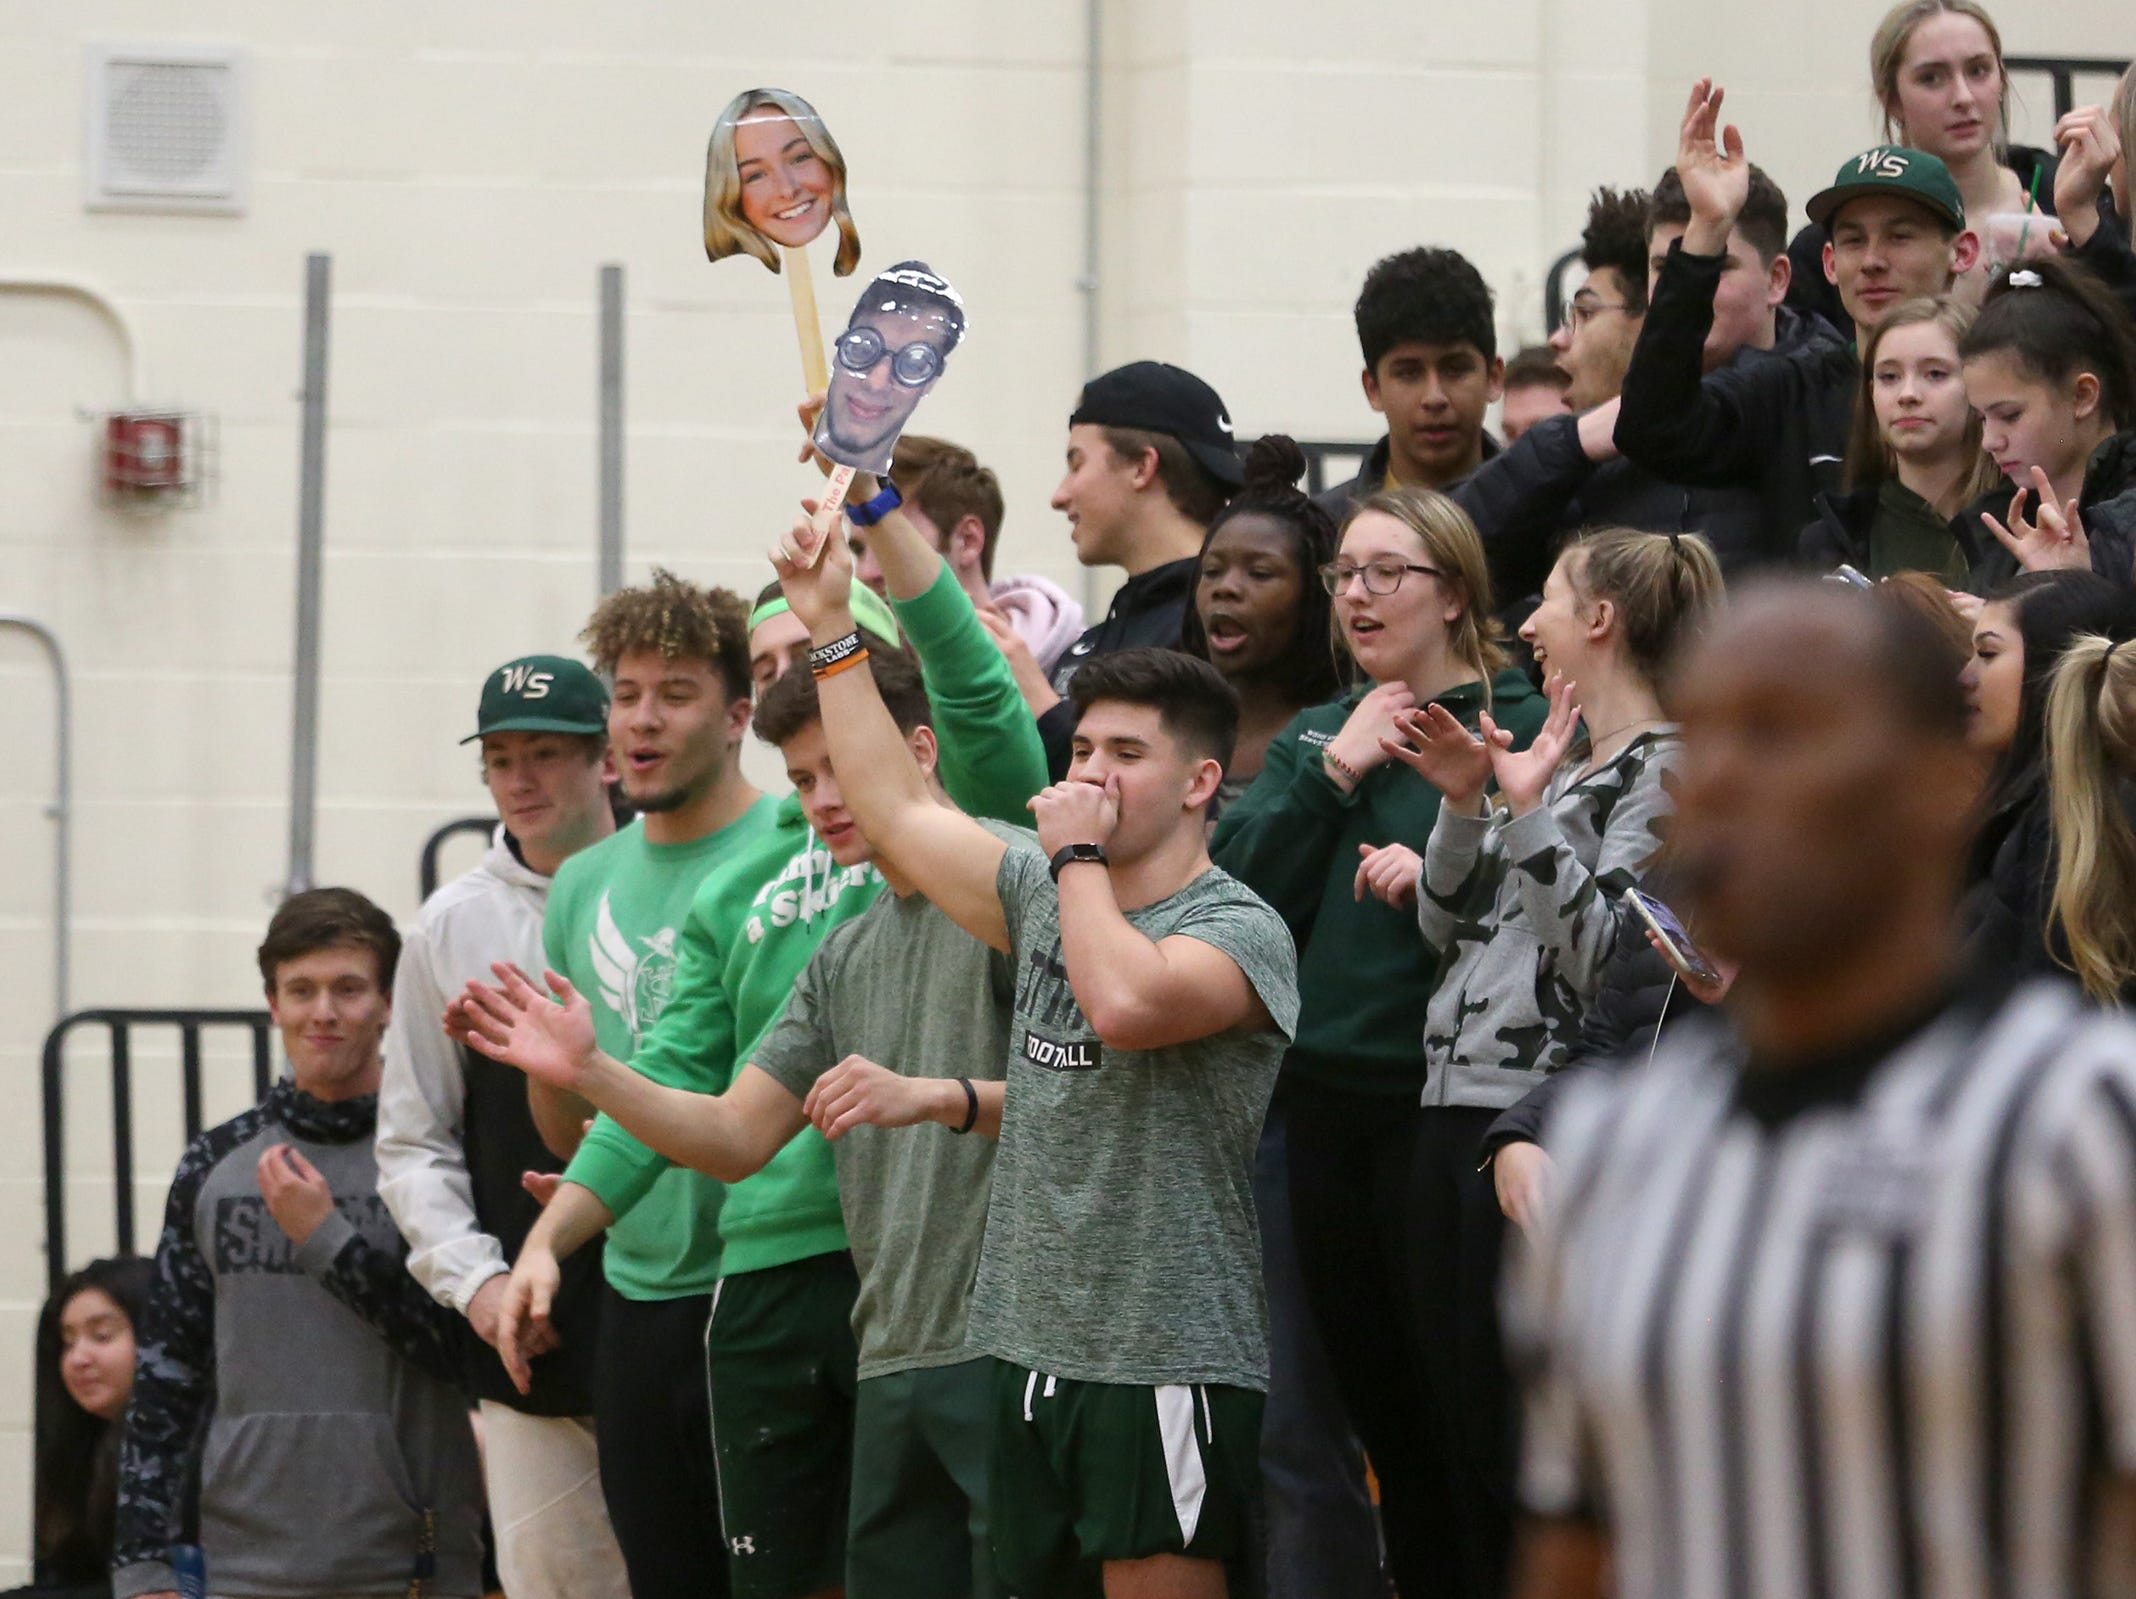 West Salem's student section distracts Westview during the West Salem vs. Westview 6A Boys Basketball State Championships first round at West Salem High School in Salem on Tuesday, Feb. 26, 2019.